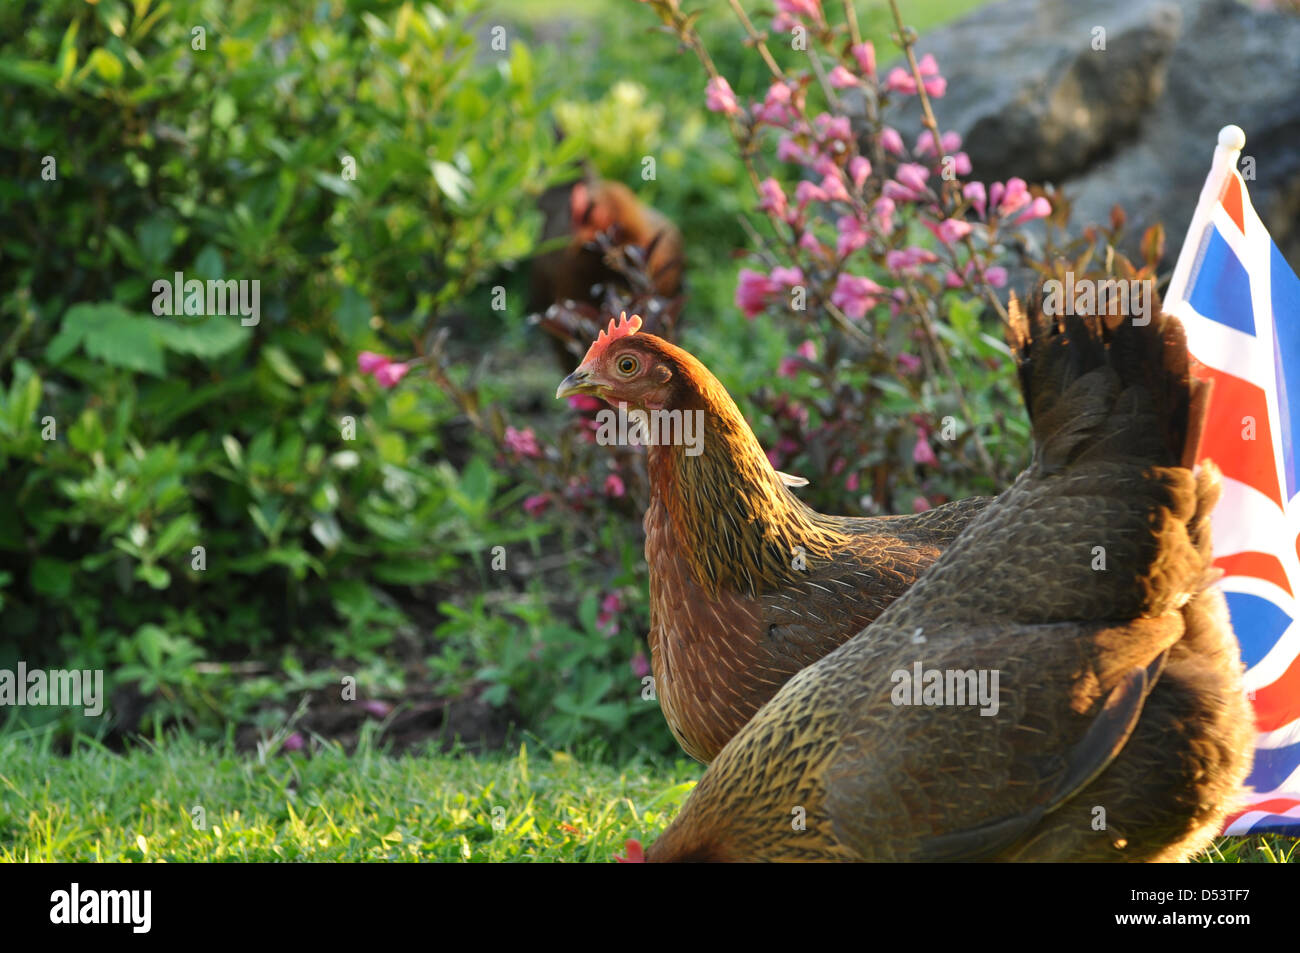 Welsummer hens in english country garden with GB flag - Stock Image